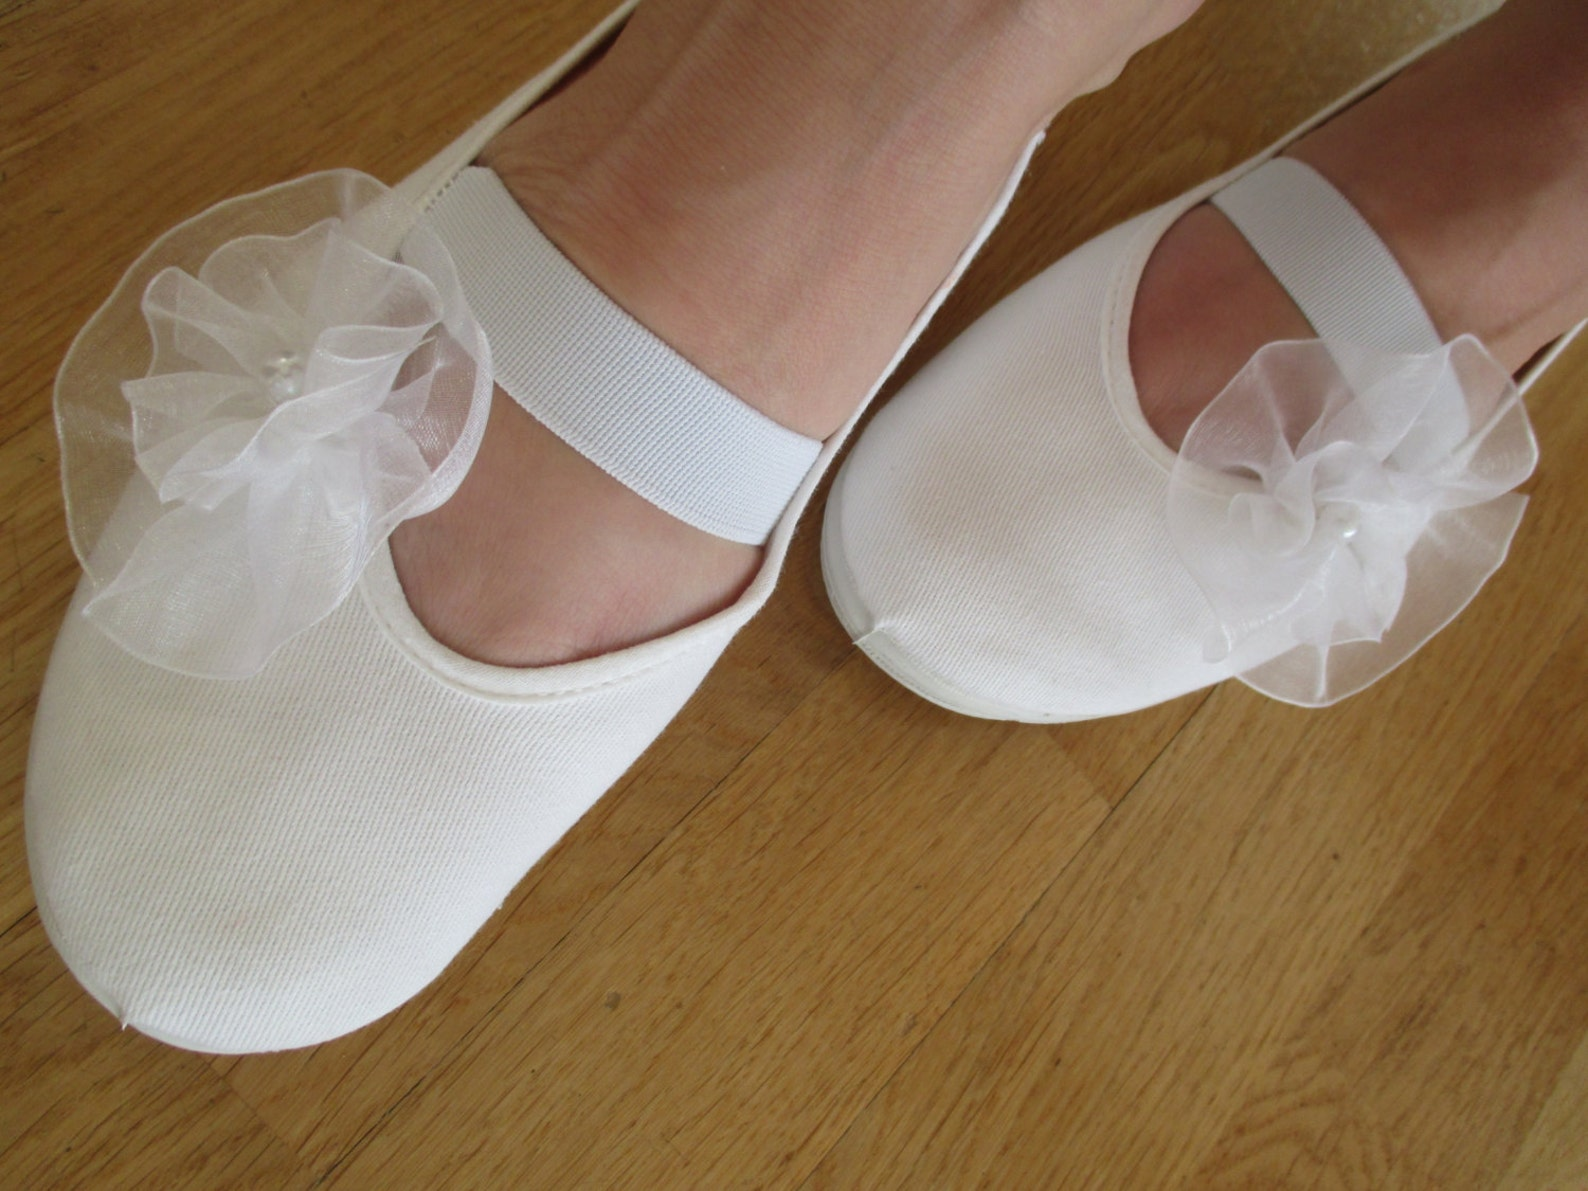 wedding shoes,woman shoes,wedding flats,girls shoes,mary jane shoes,wedding ballet flats,bridal shoes,summer dress shoes,size us